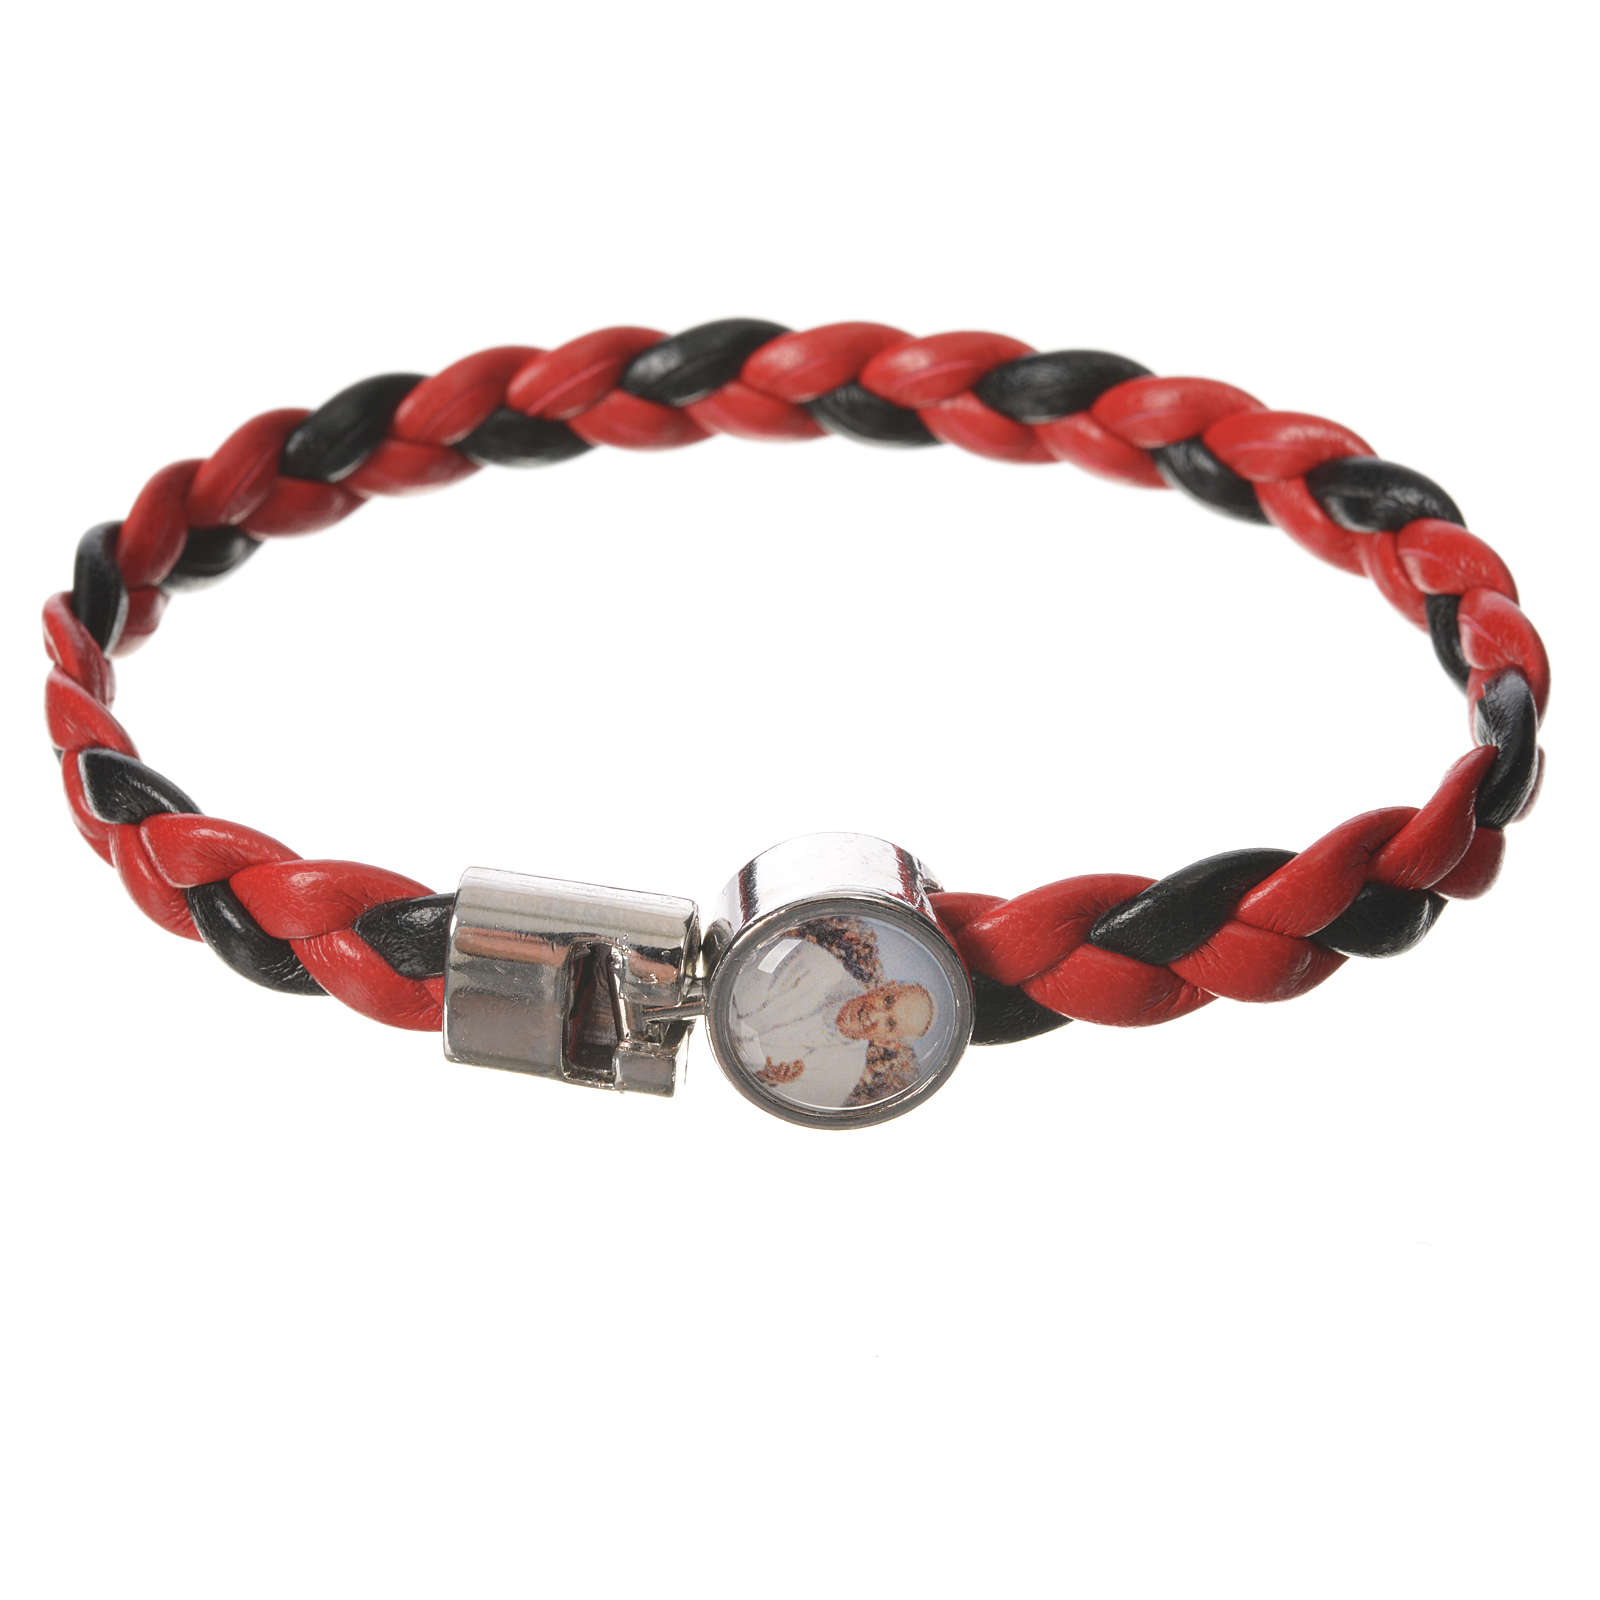 Braided bracelet, 20cm red and black with Pope Francis 4